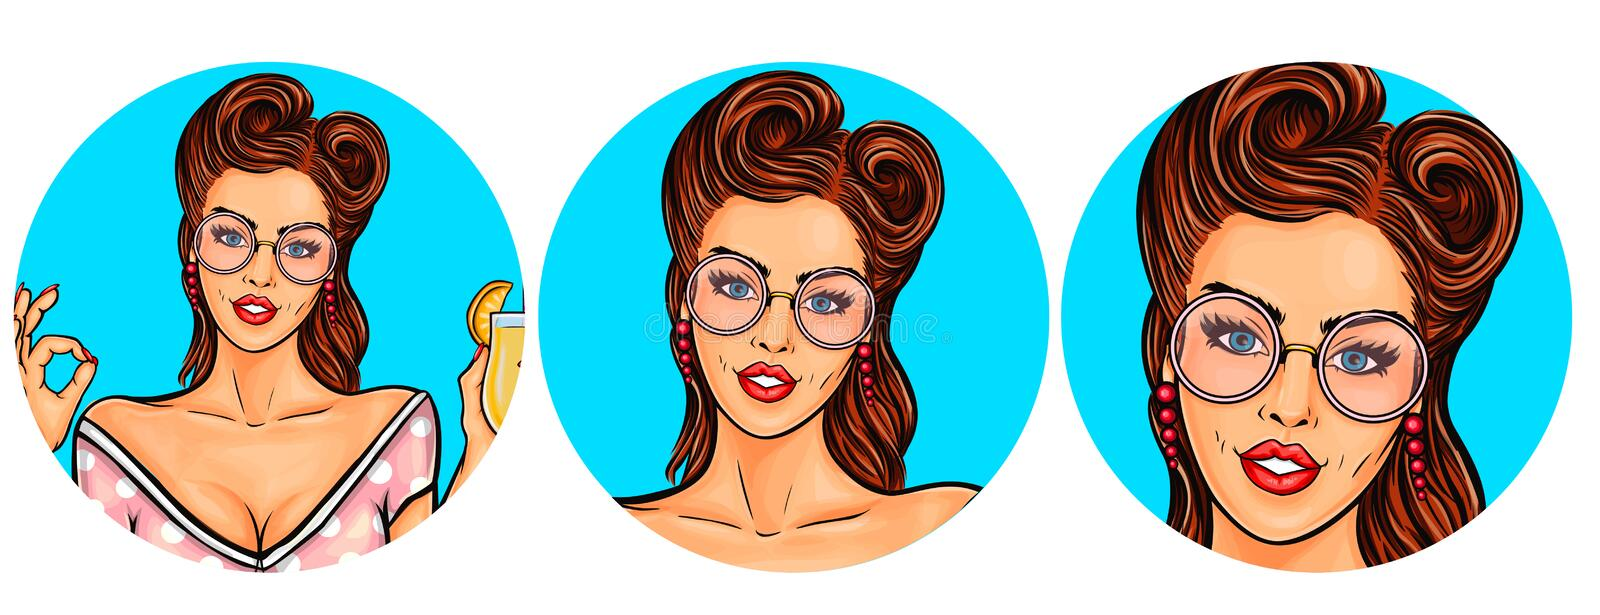 Set of vector illustration, womens pop art round avatars icons. For users of social networking, blogs. Girl is holding a glass of cocktail vector illustration